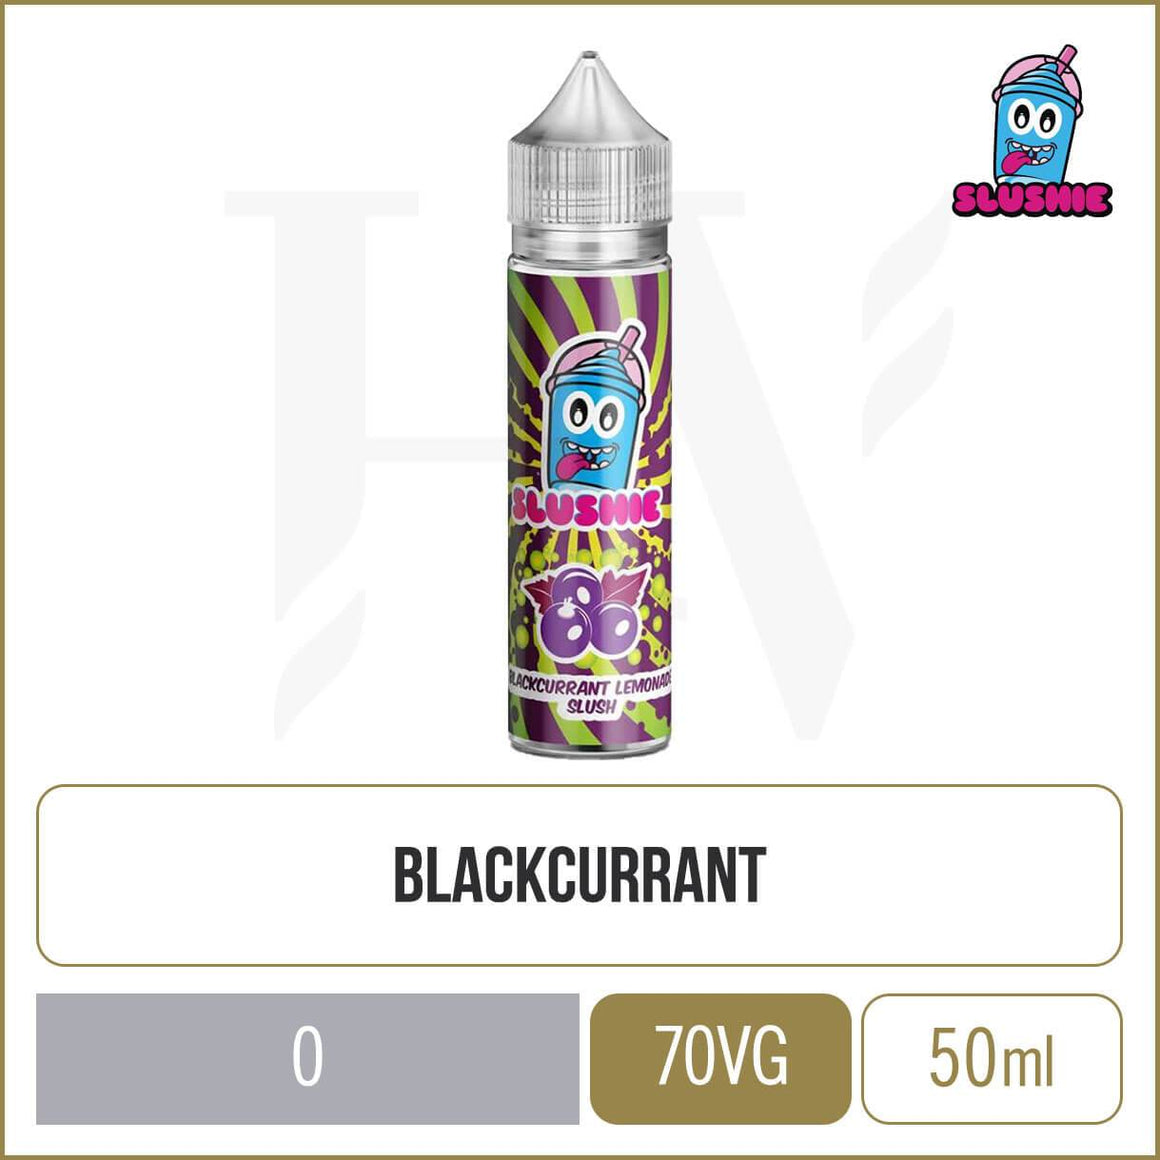 Slushie Blackcurrant Lemonade Slush 50ml